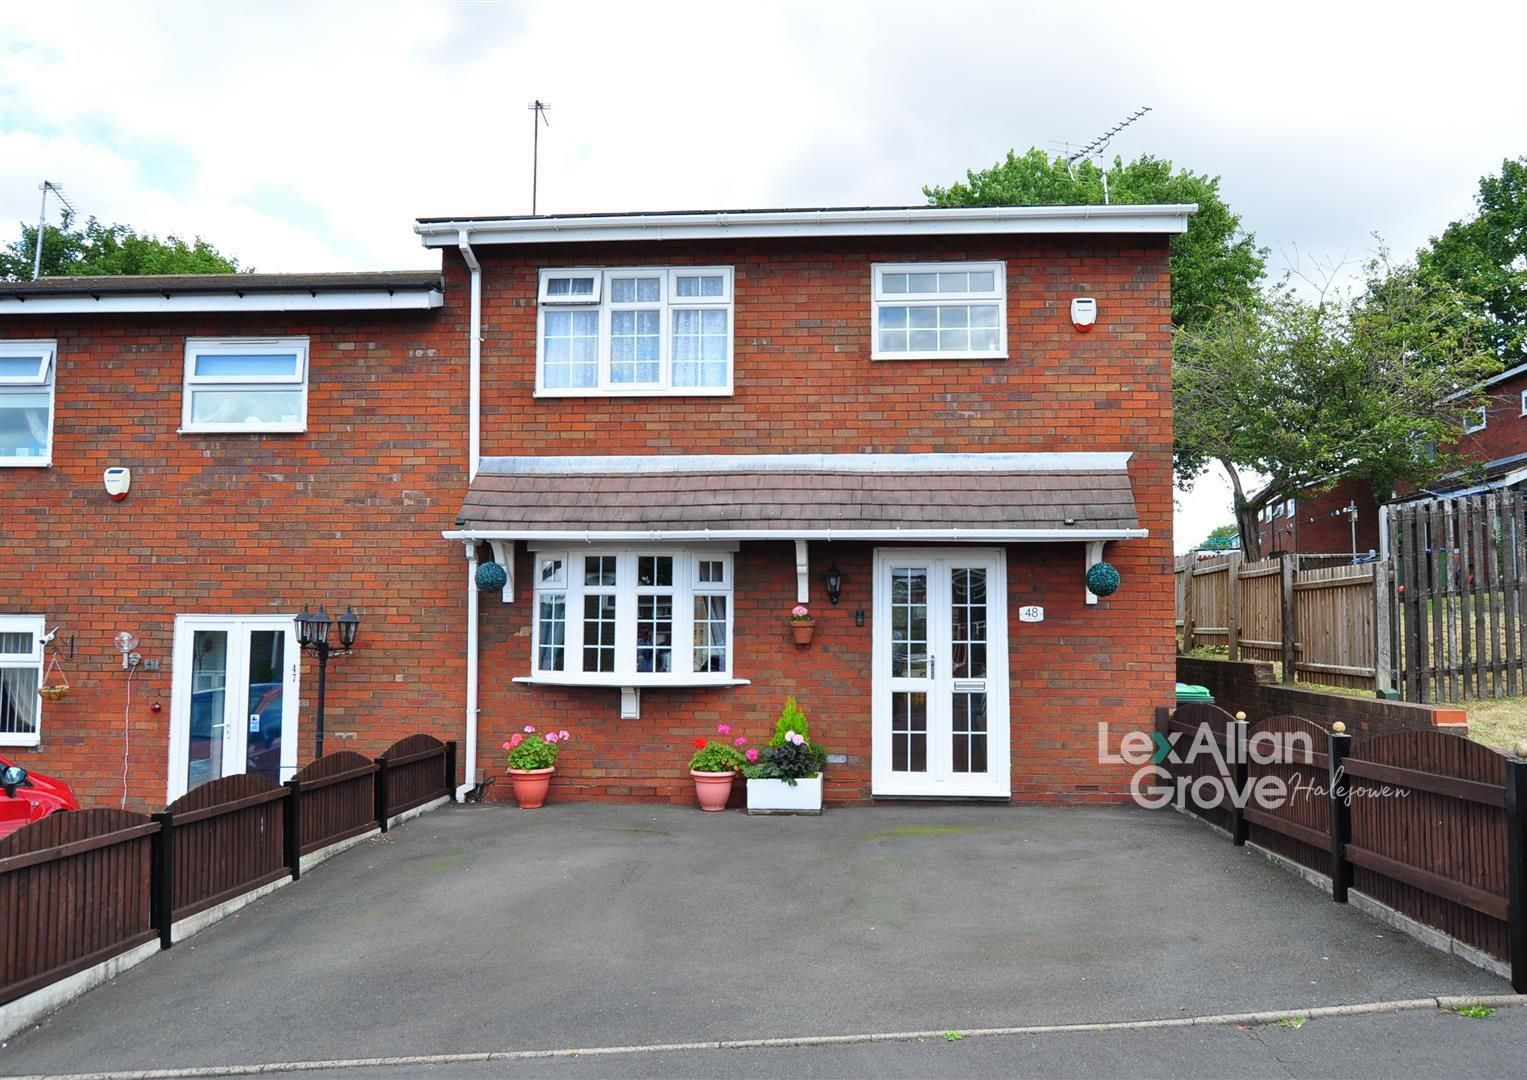 3 bed end-of-terrace for sale, B64